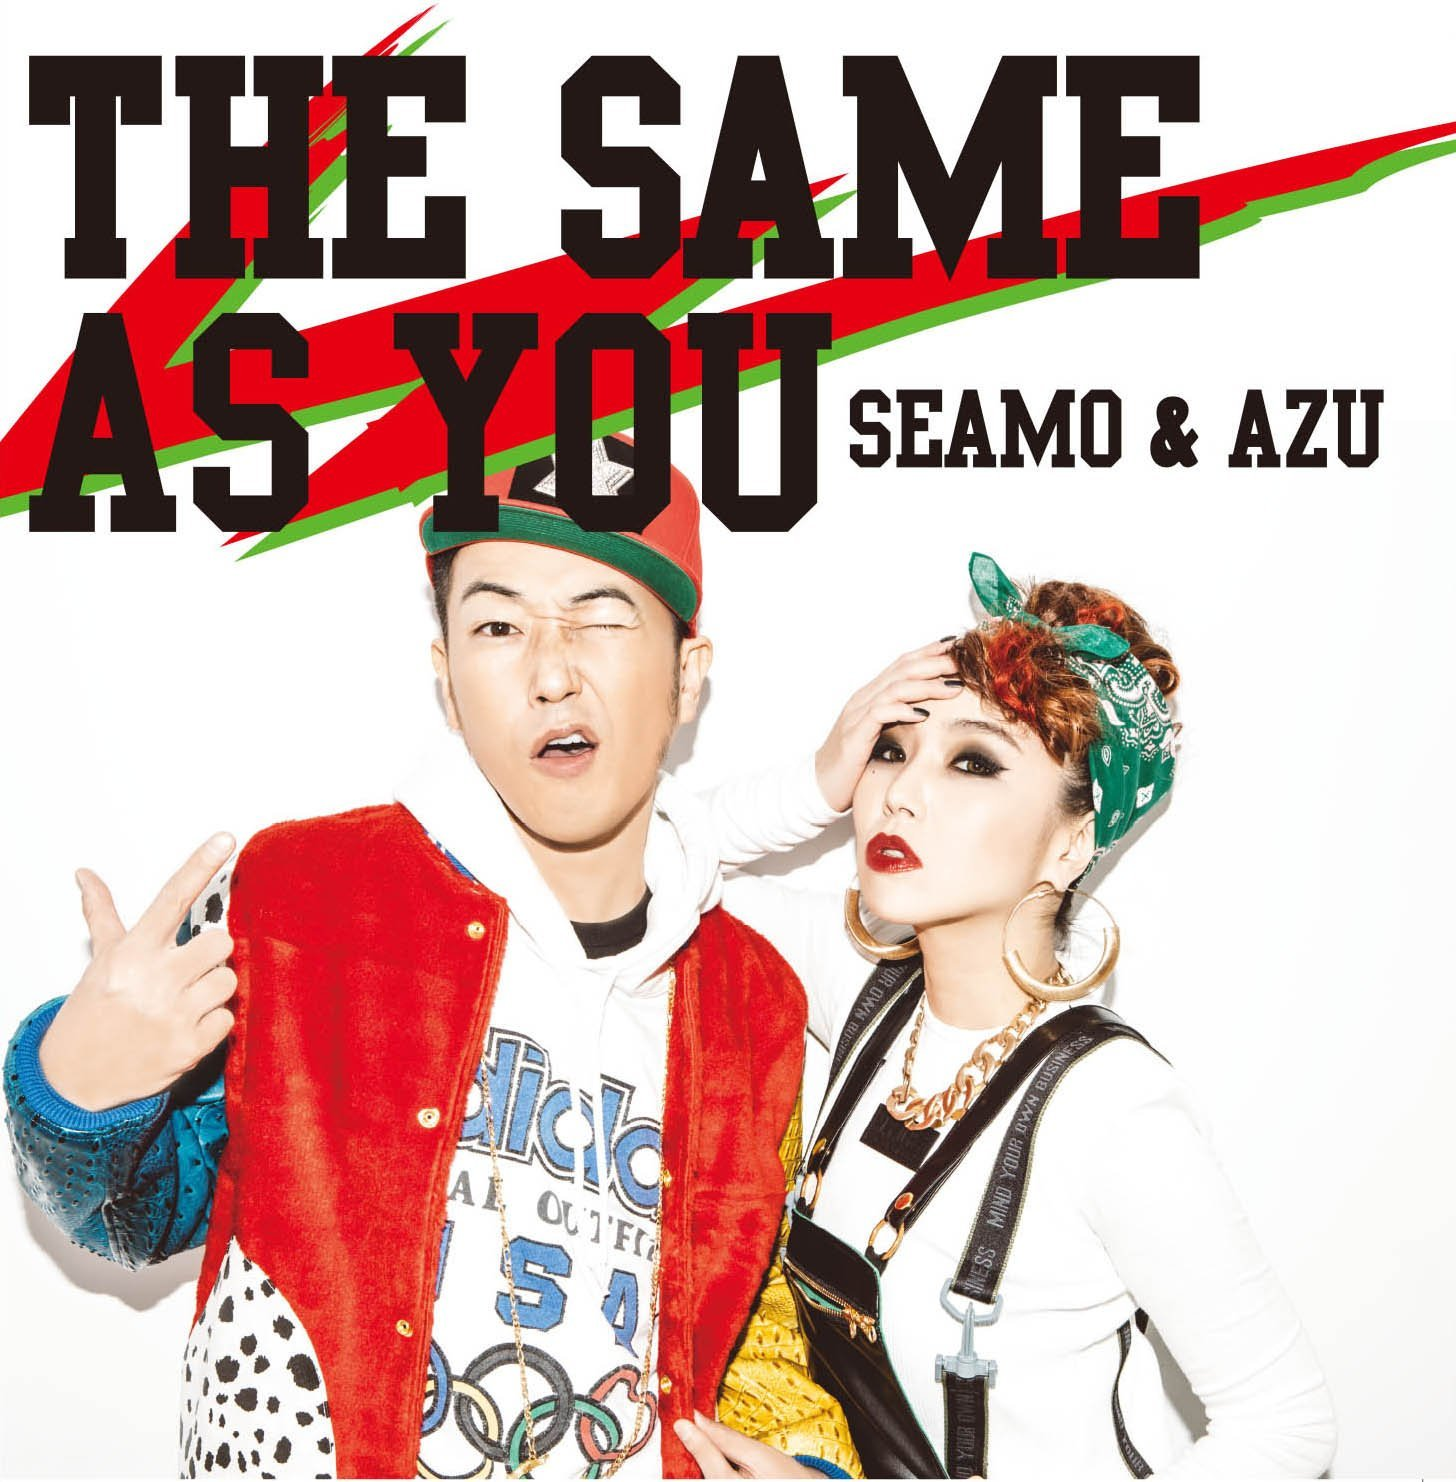 SEAMO&AZU「THE SAME AS YOU」